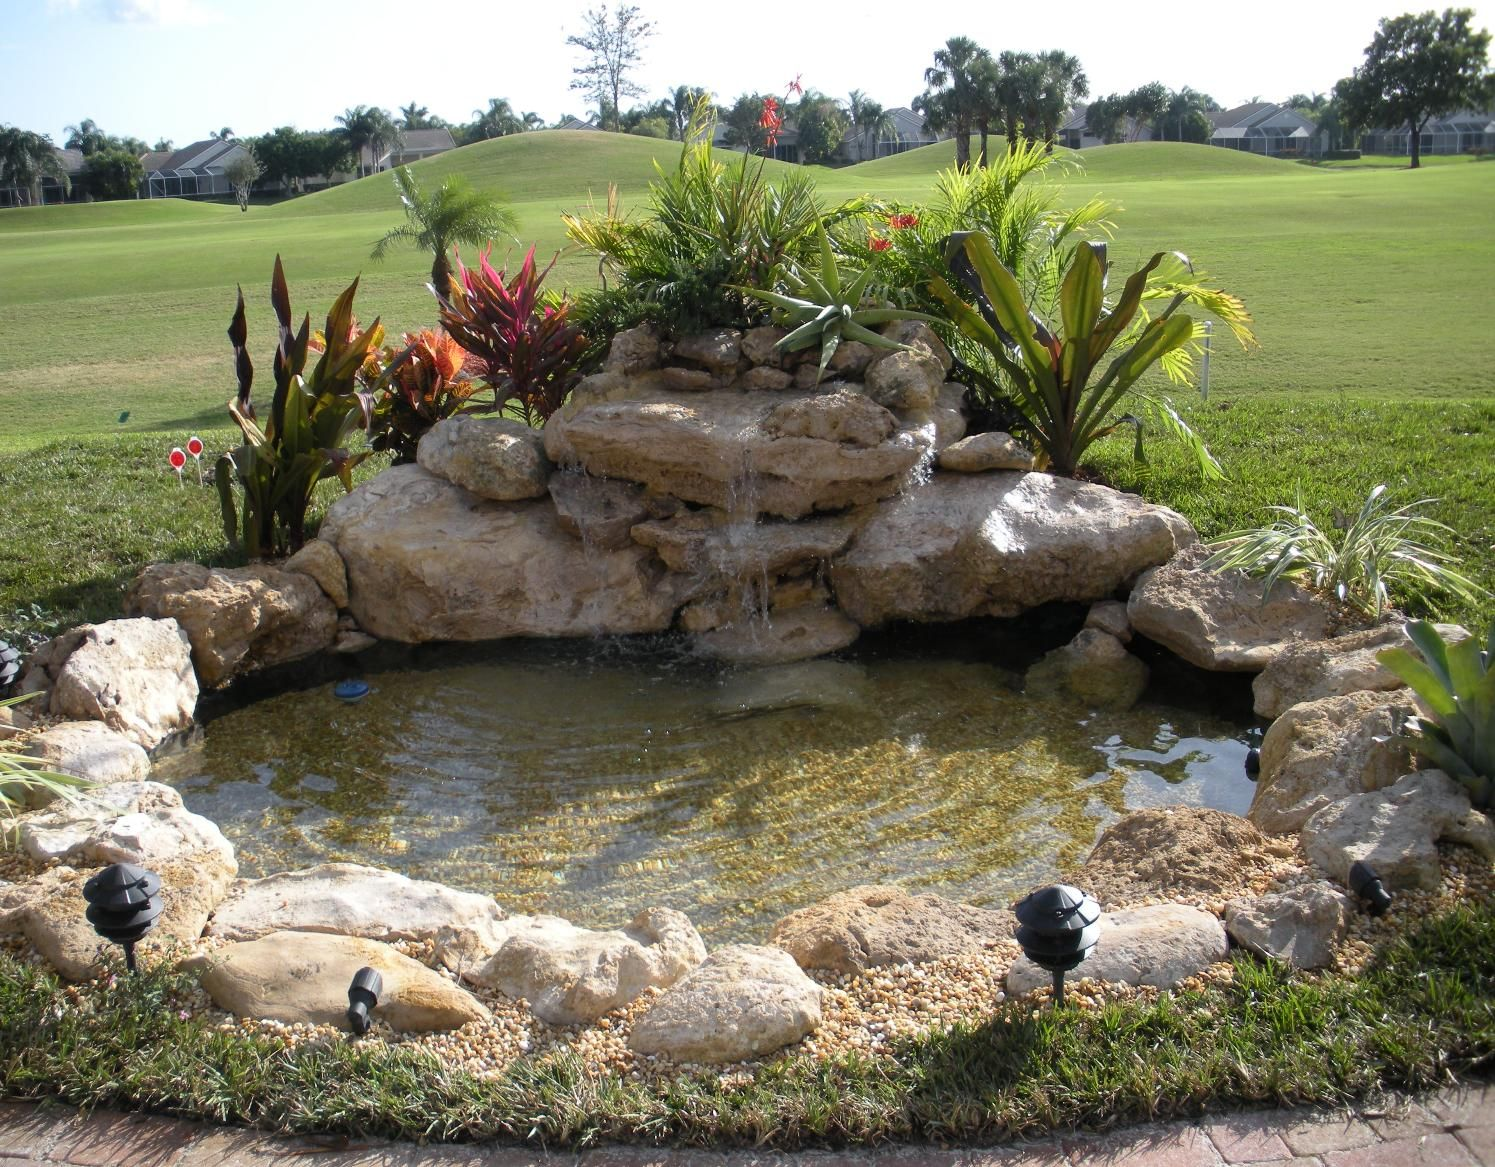 Landscaping waterfalls and fish ponds ways to maintain for Fish for small outdoor pond